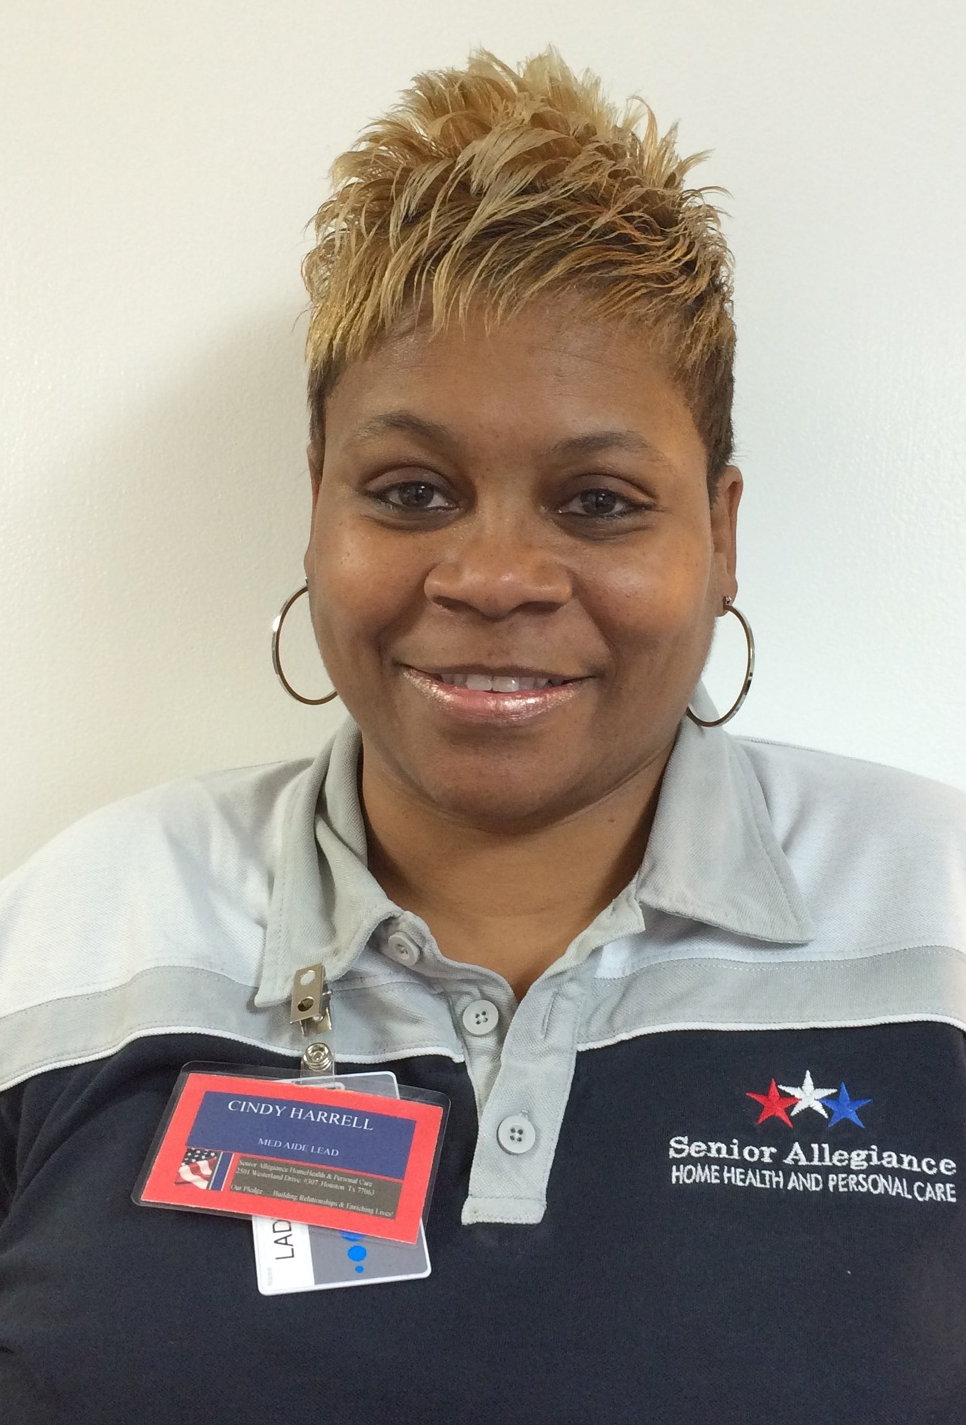 home health care in houston_cindy harrell